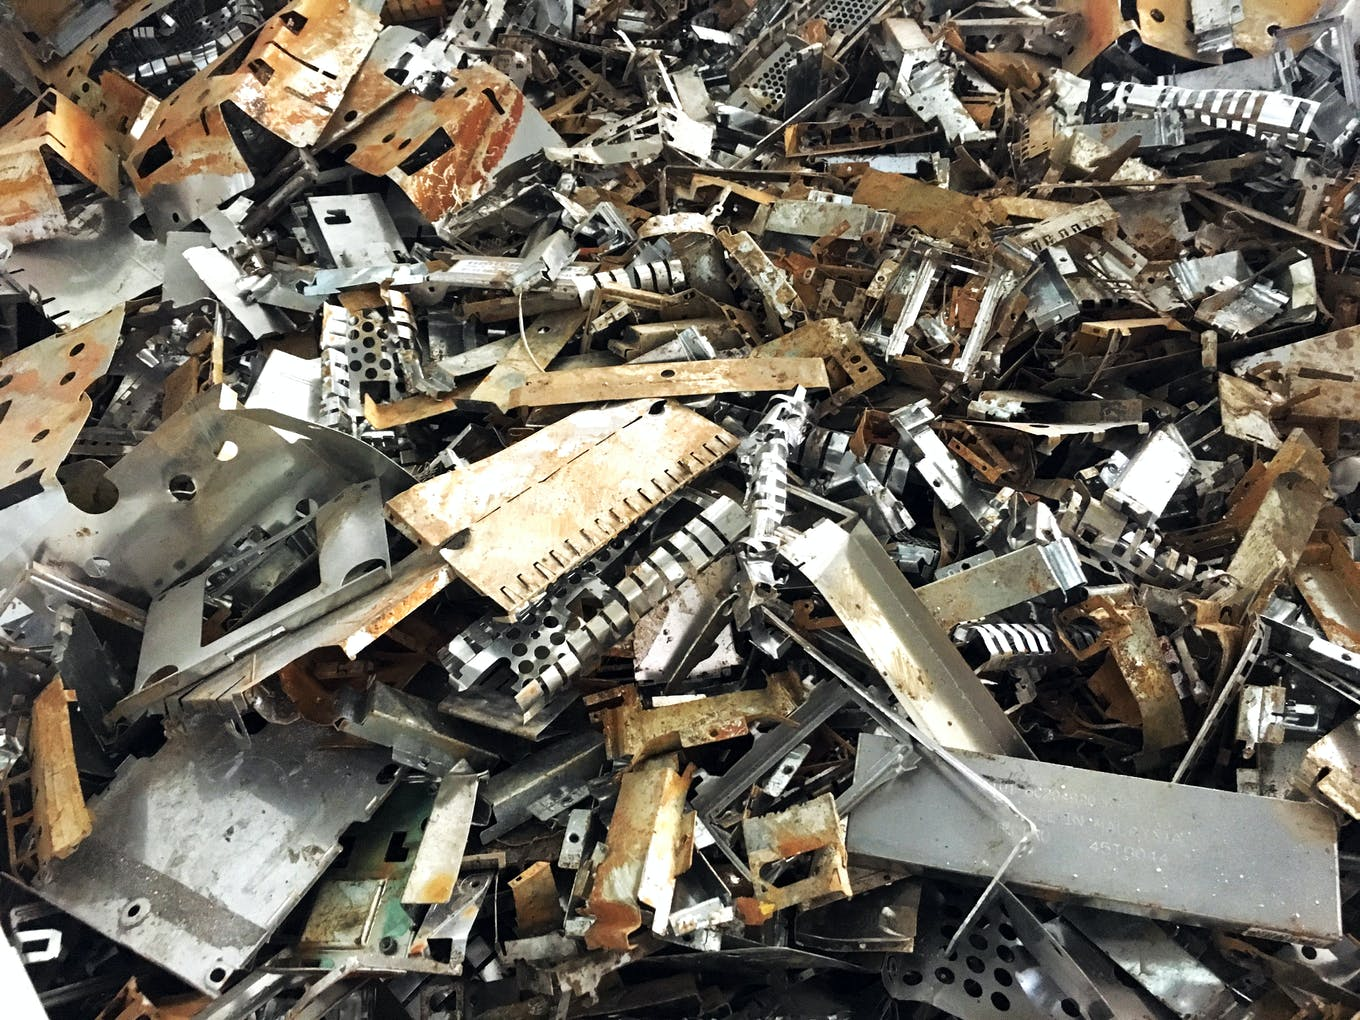 E-waste at a recycling facility in Singapore